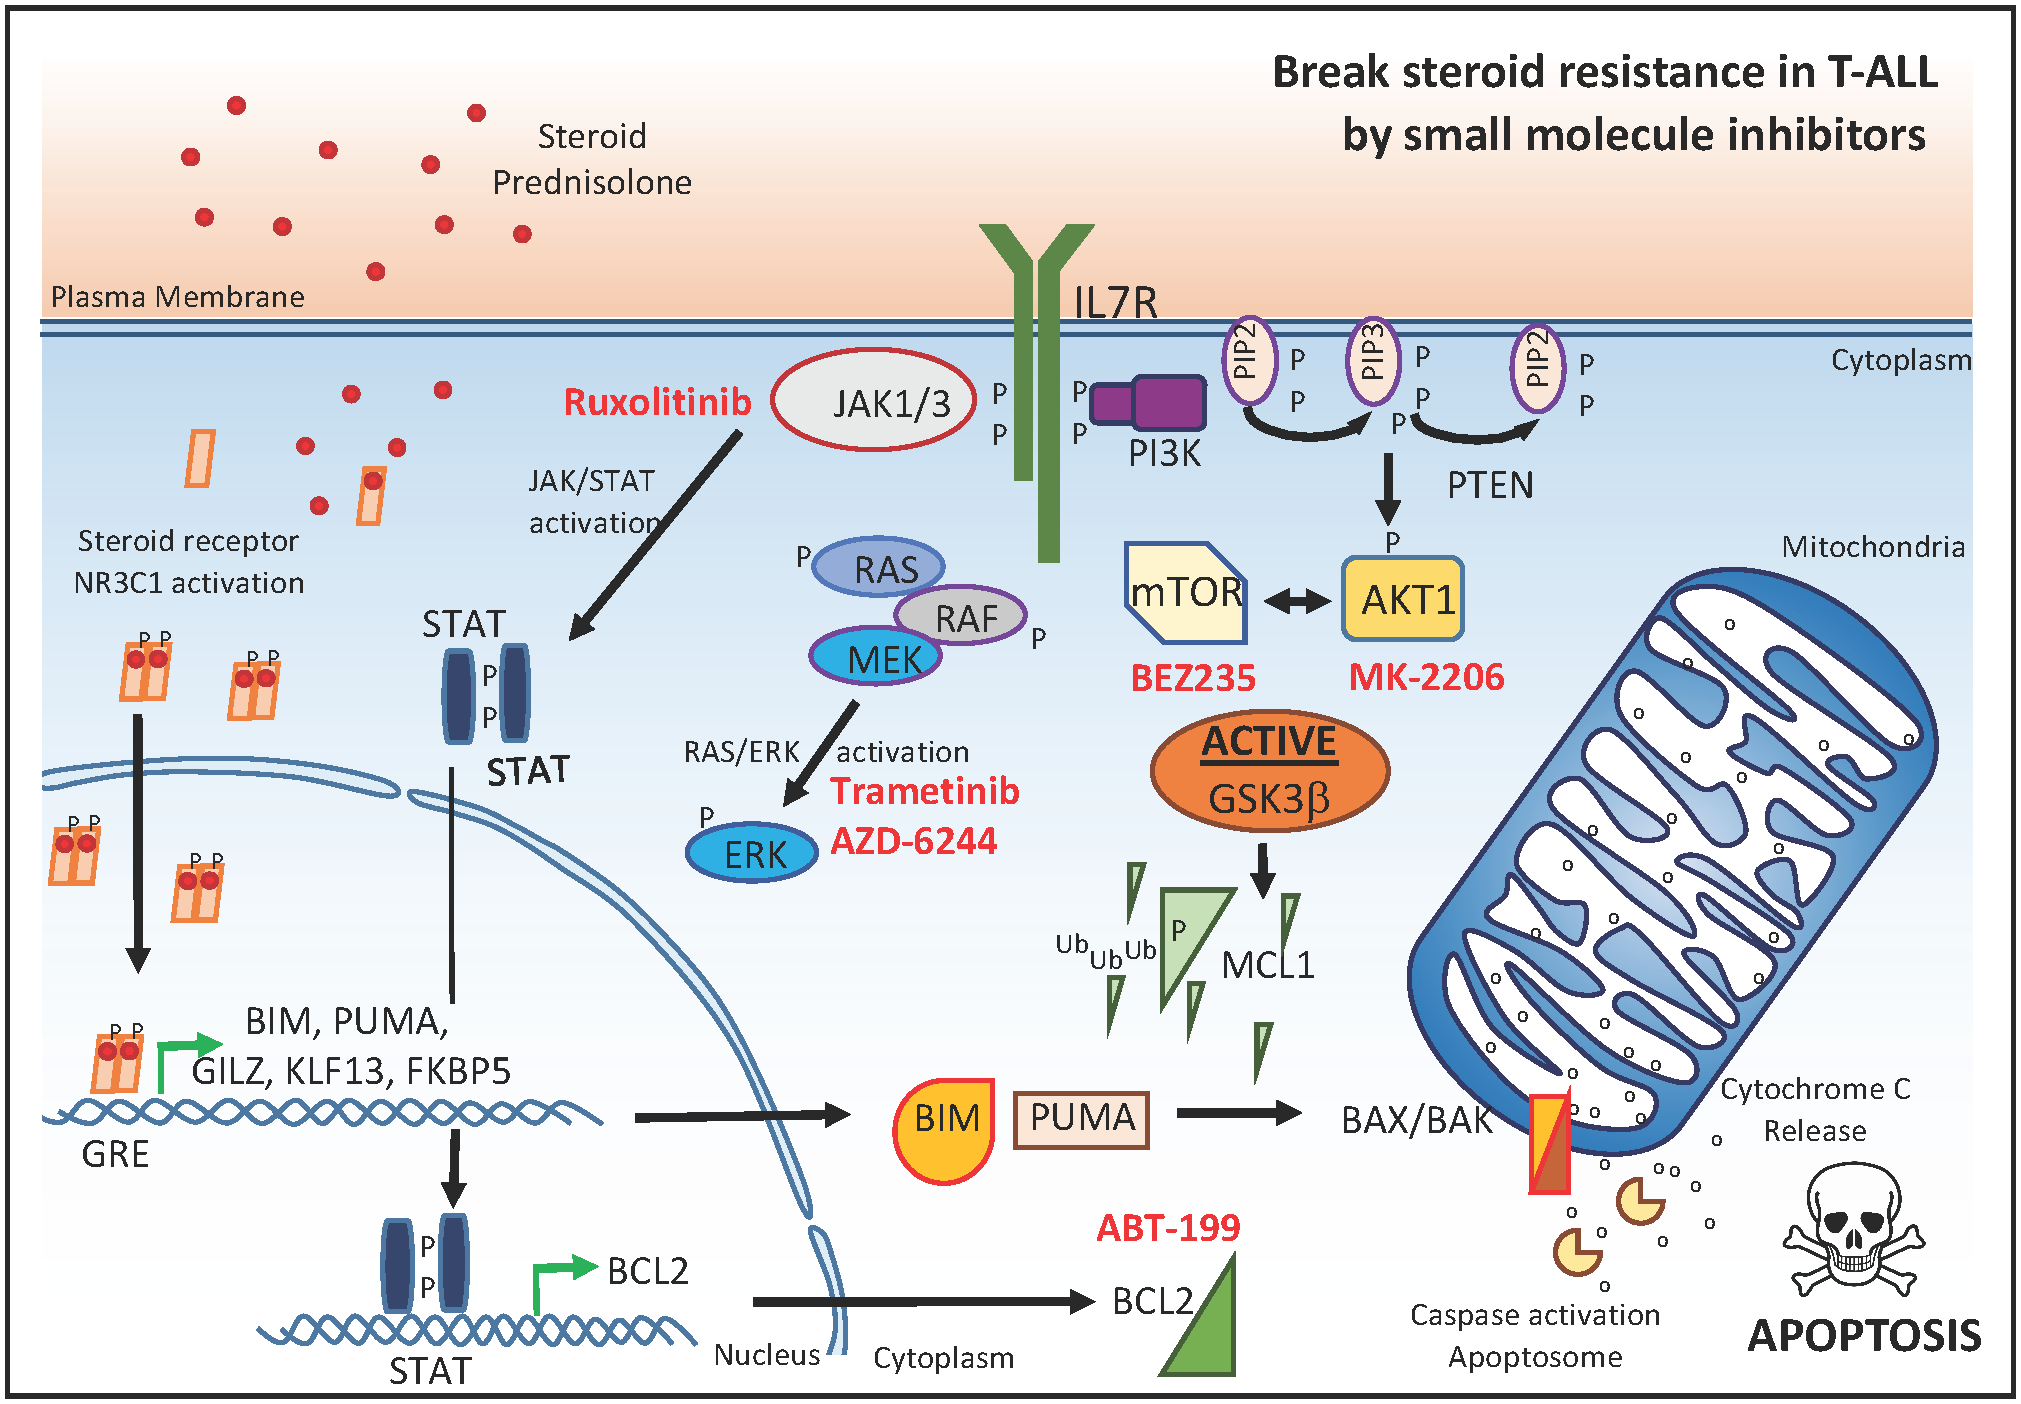 Small molecule inhibitors that reverse glucocorticoid resistance in T-ALL.